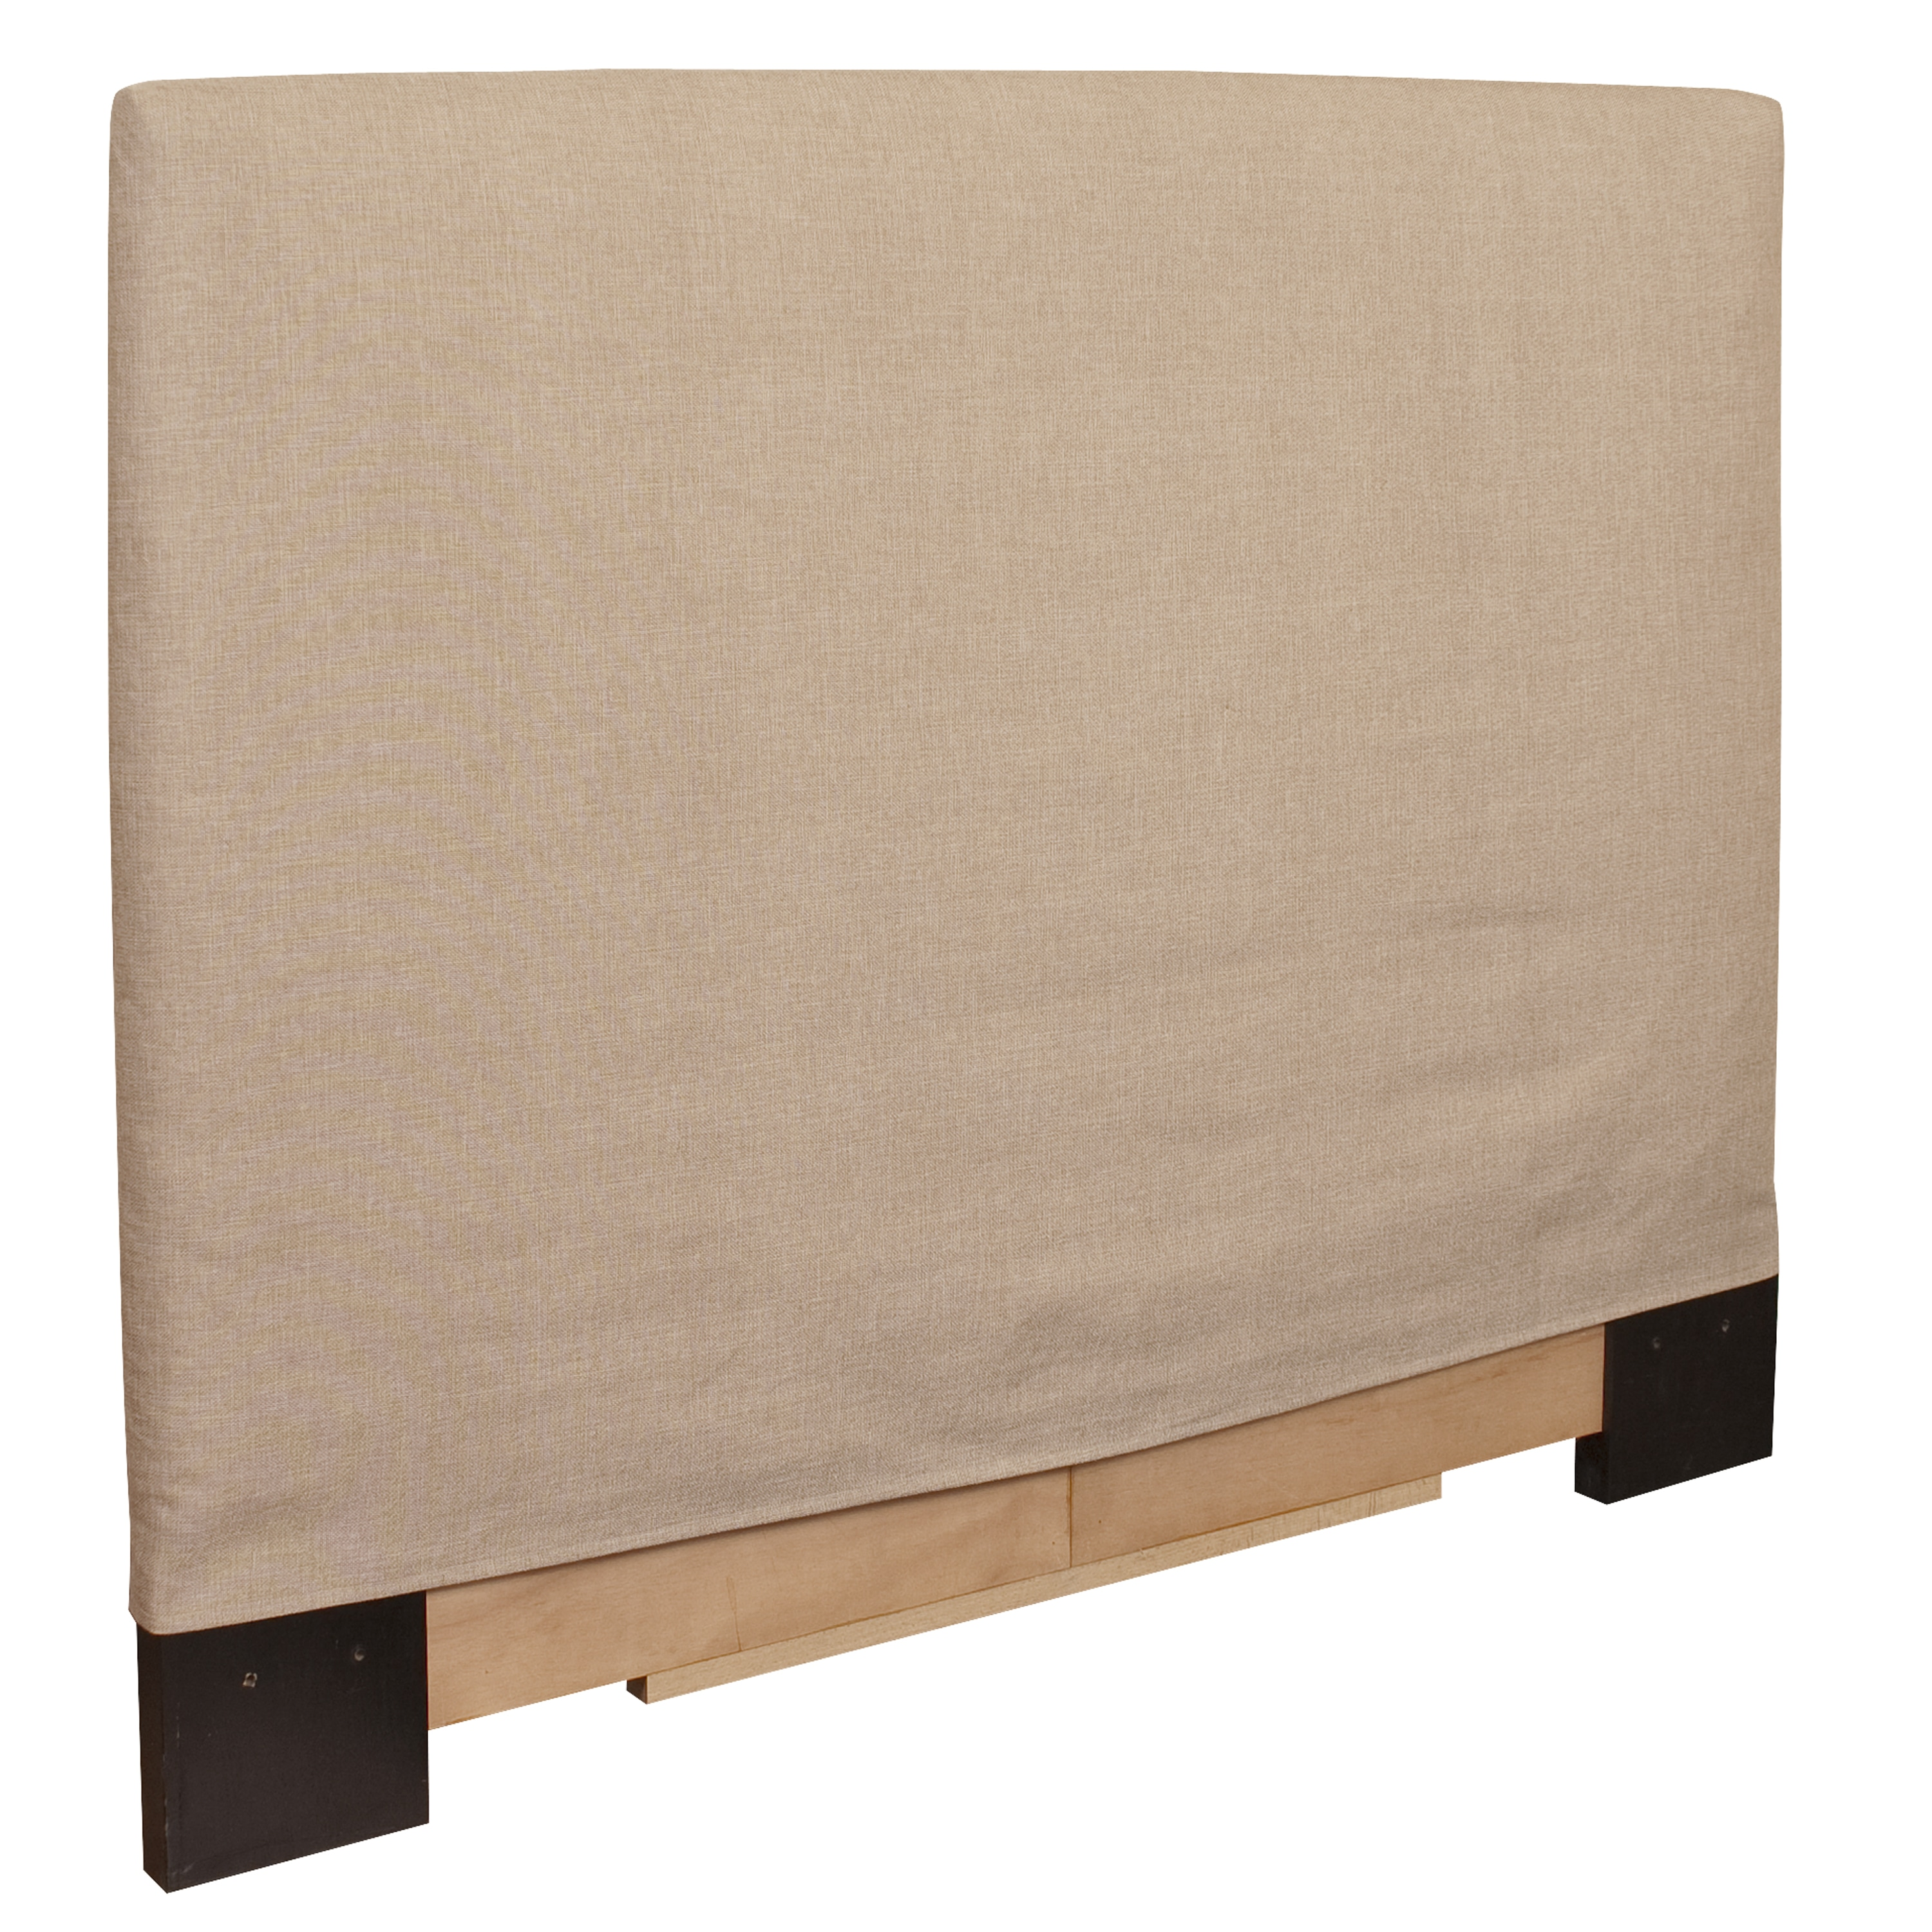 King-size Sand Slip Covered Headboard